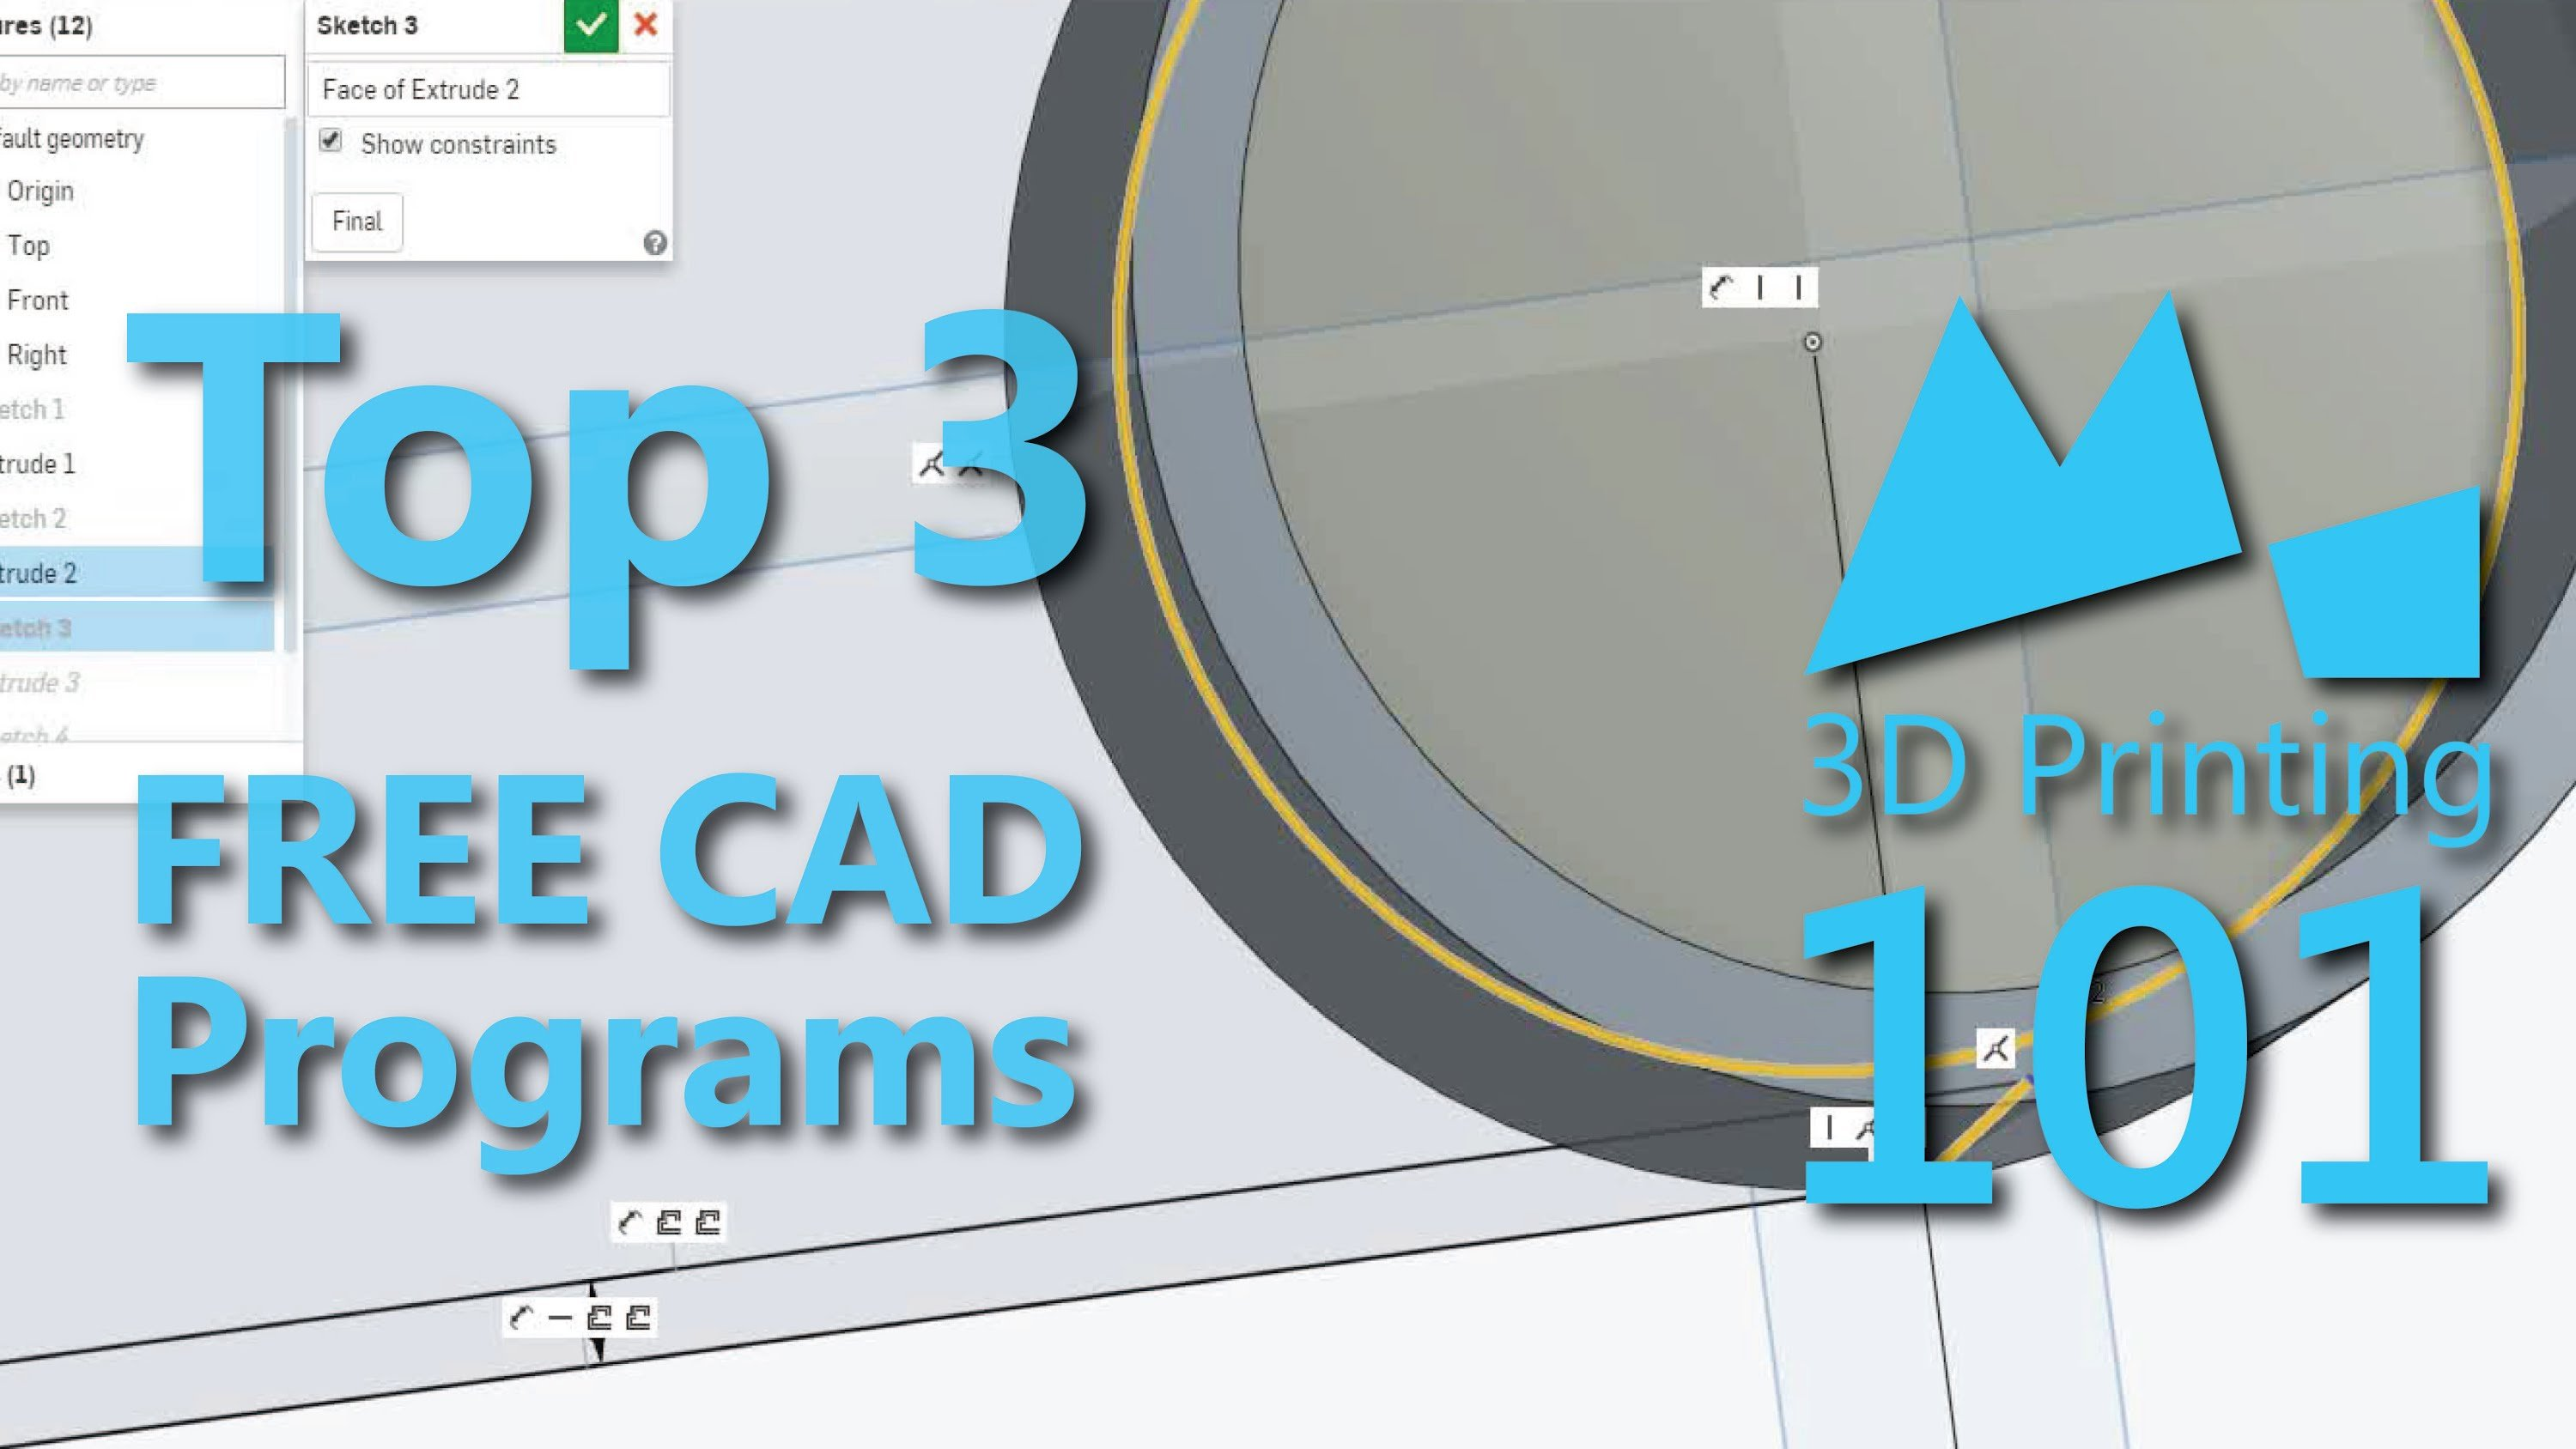 Top 3 free cad for 3dprinting adafruit industries for Software cad 3d